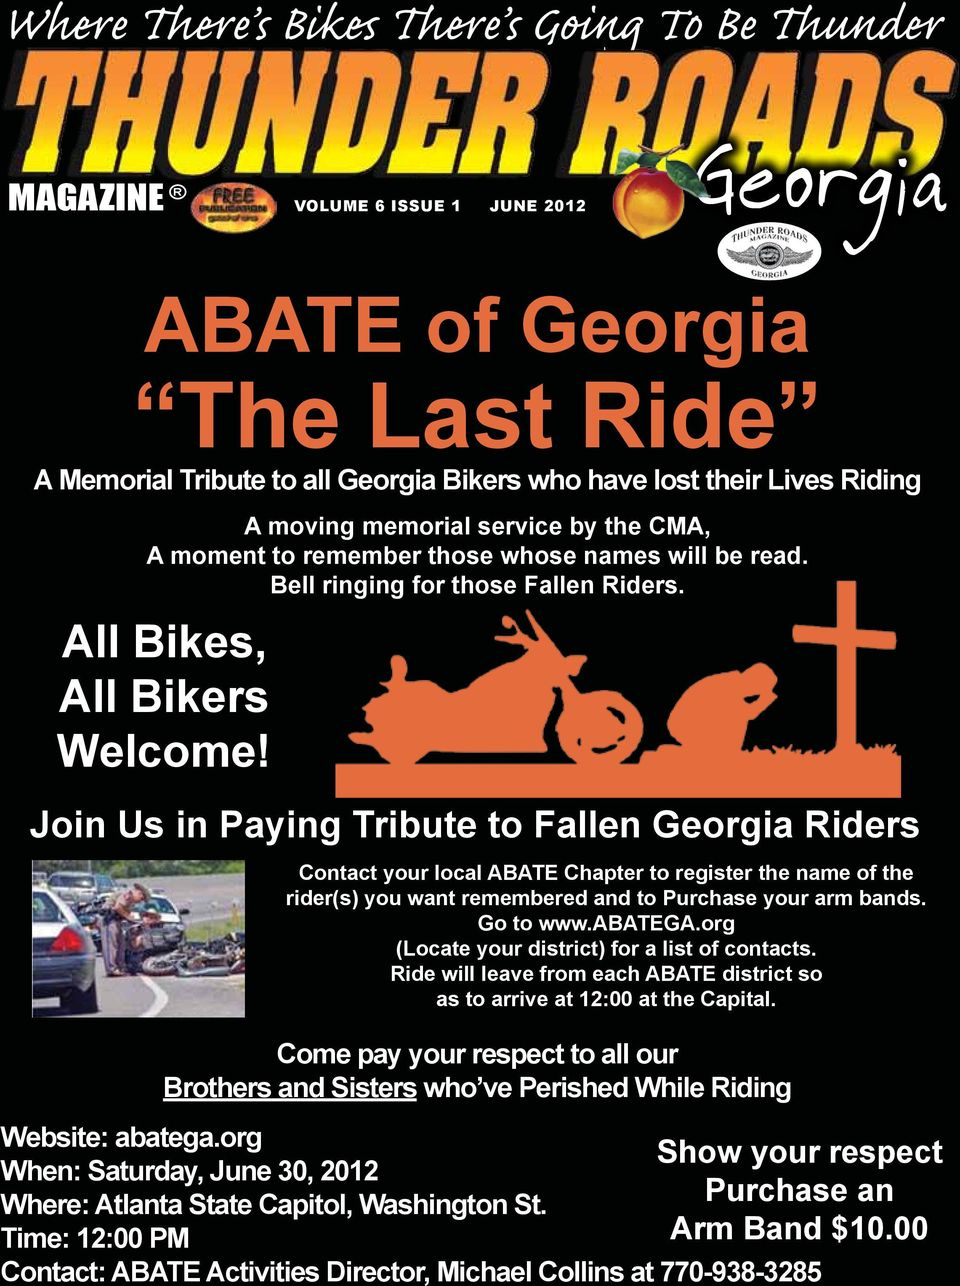 Join Us in Paying Tribute to Fallen Georgia Riders Contact your local ABATE Chapter to register the name of the rider(s) you want remembered and to Purchase your arm bands. Go to www.abatega.